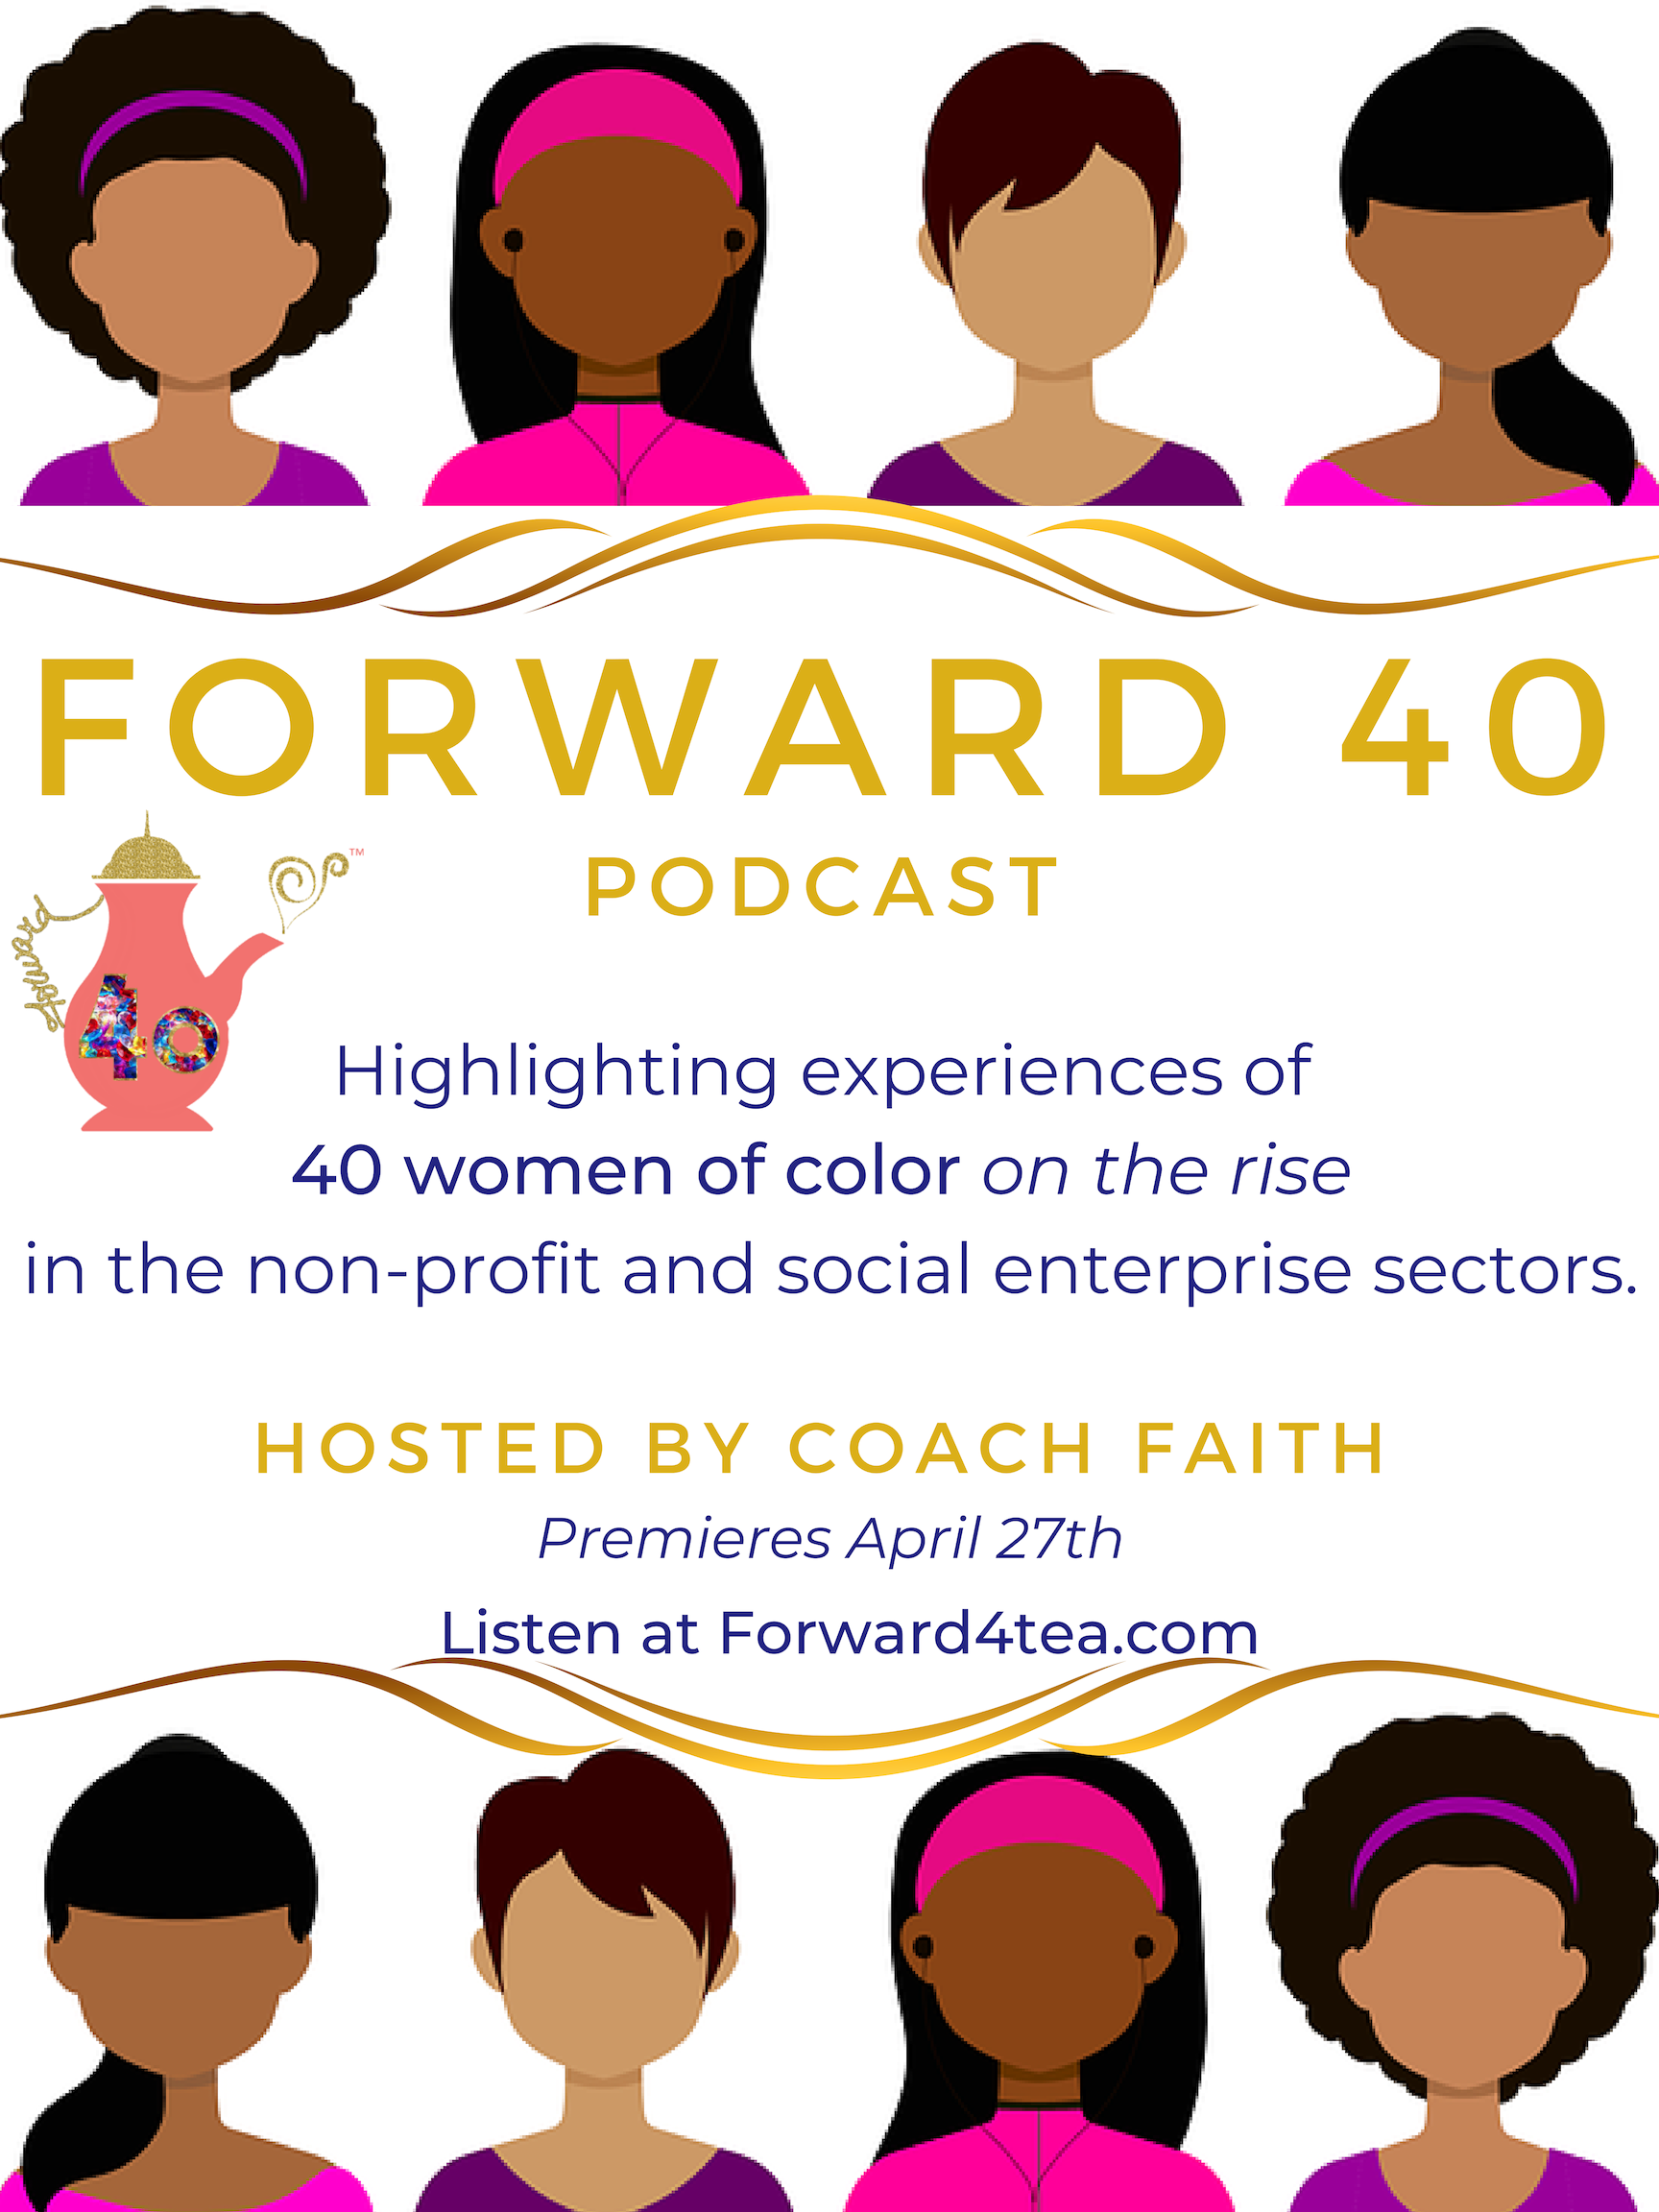 Forward 40 Podcast Flyer.png